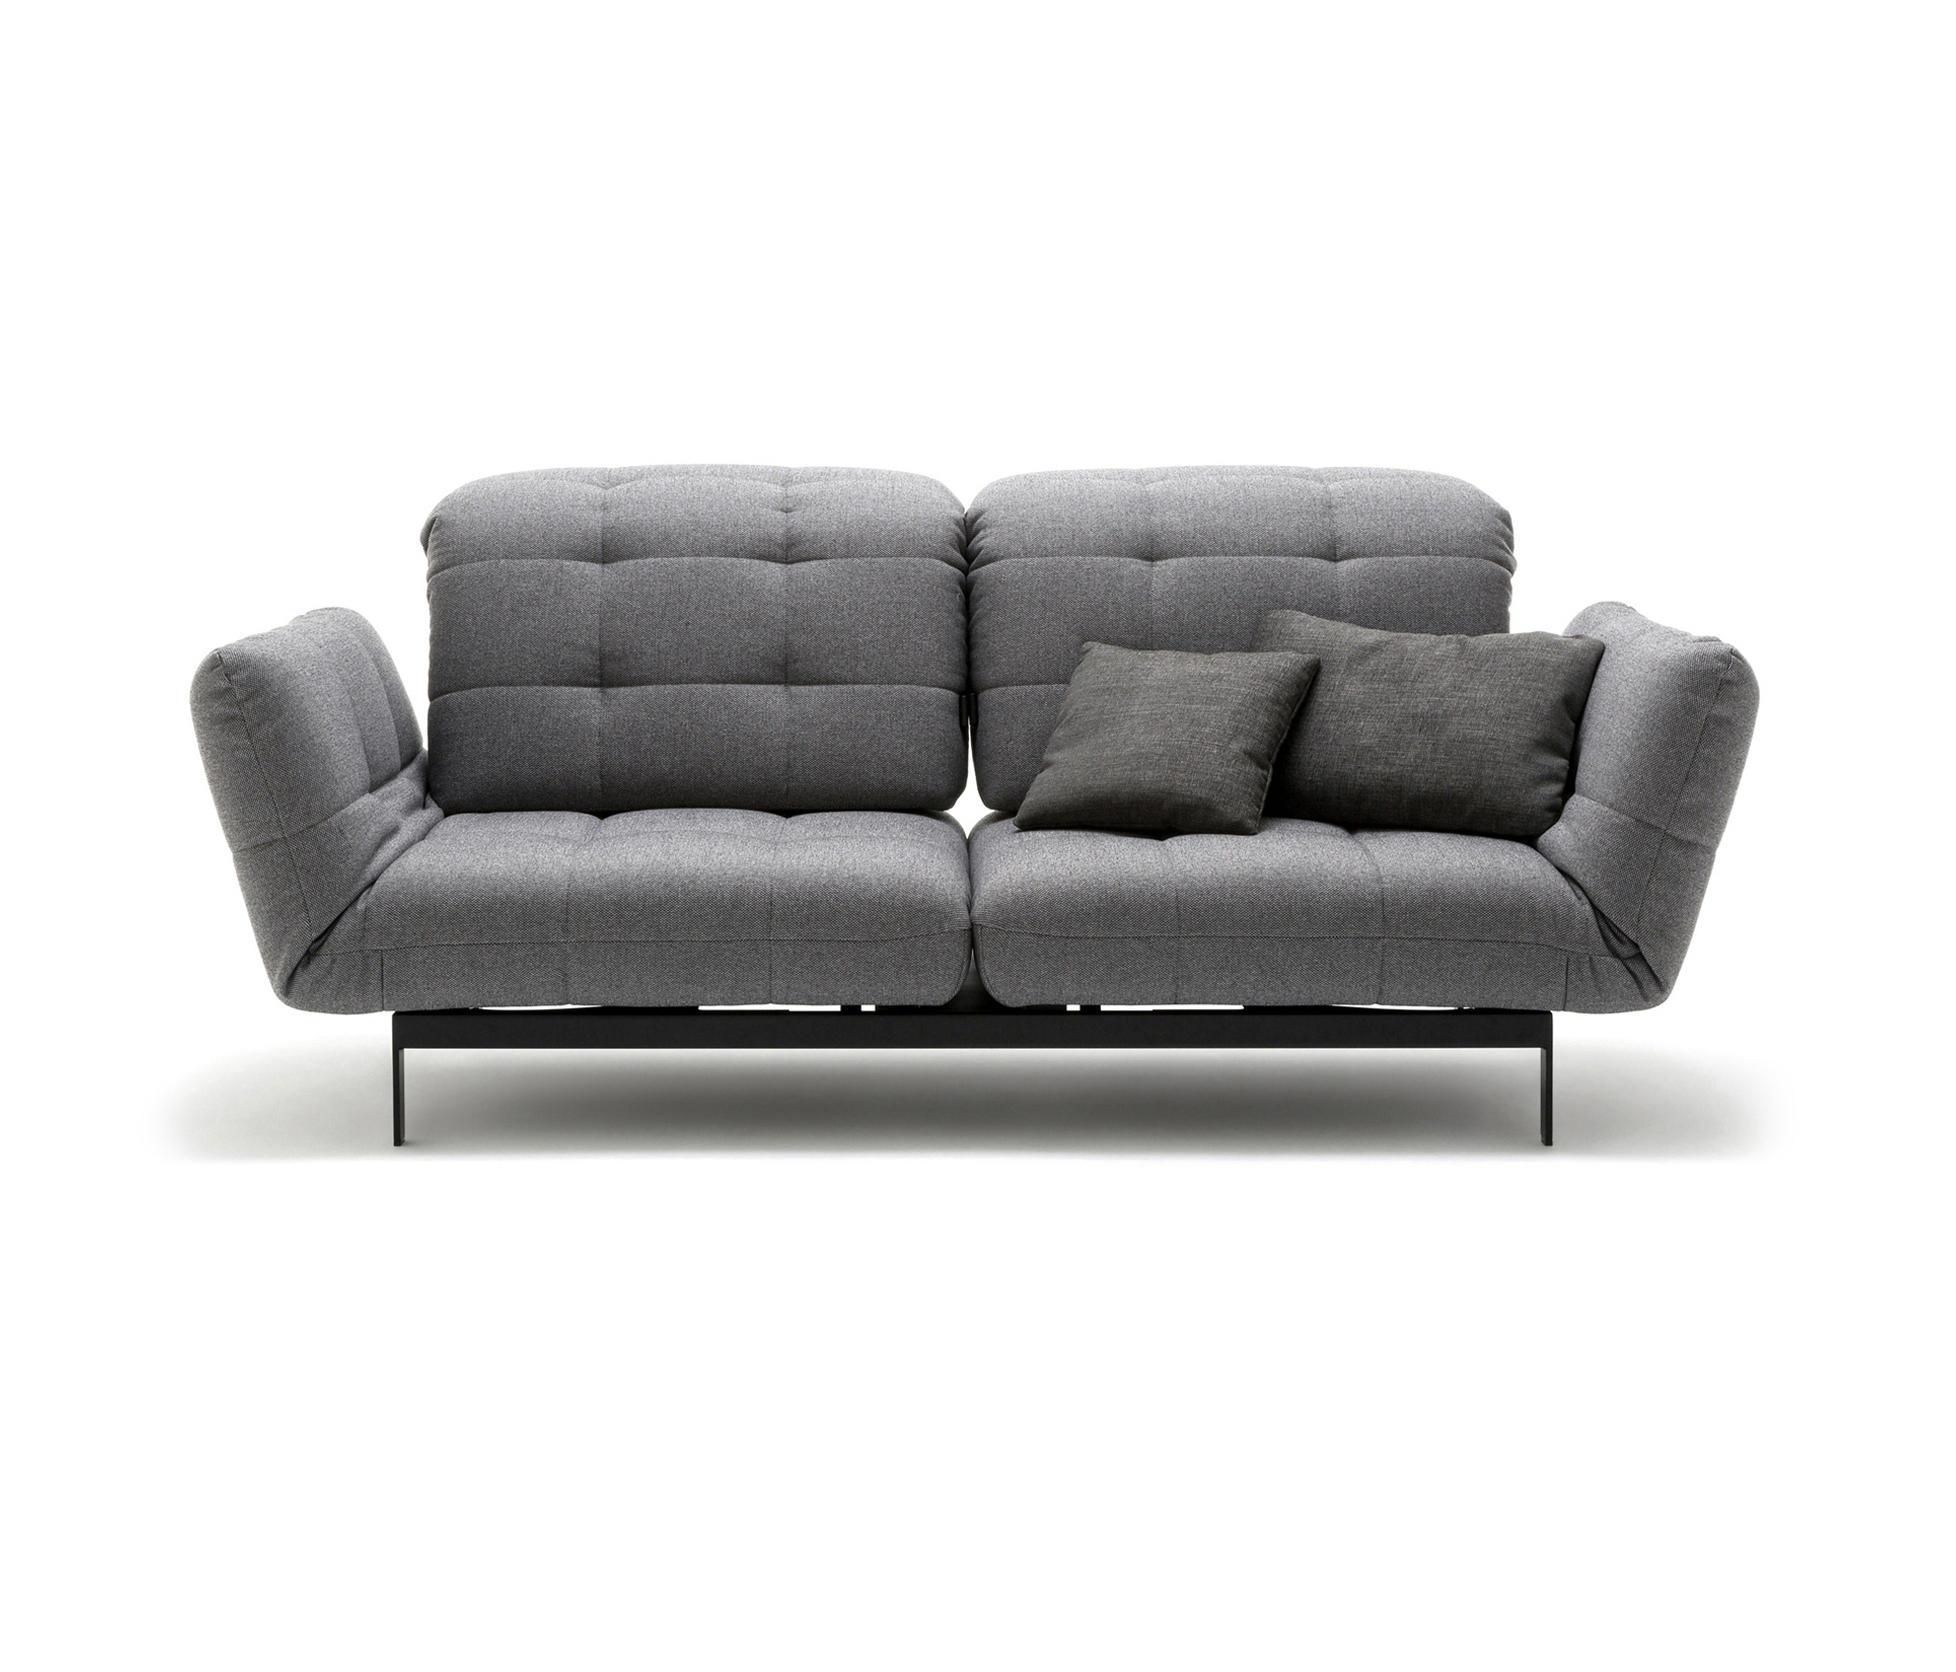 Rolf benz sofa bed for Benz couch